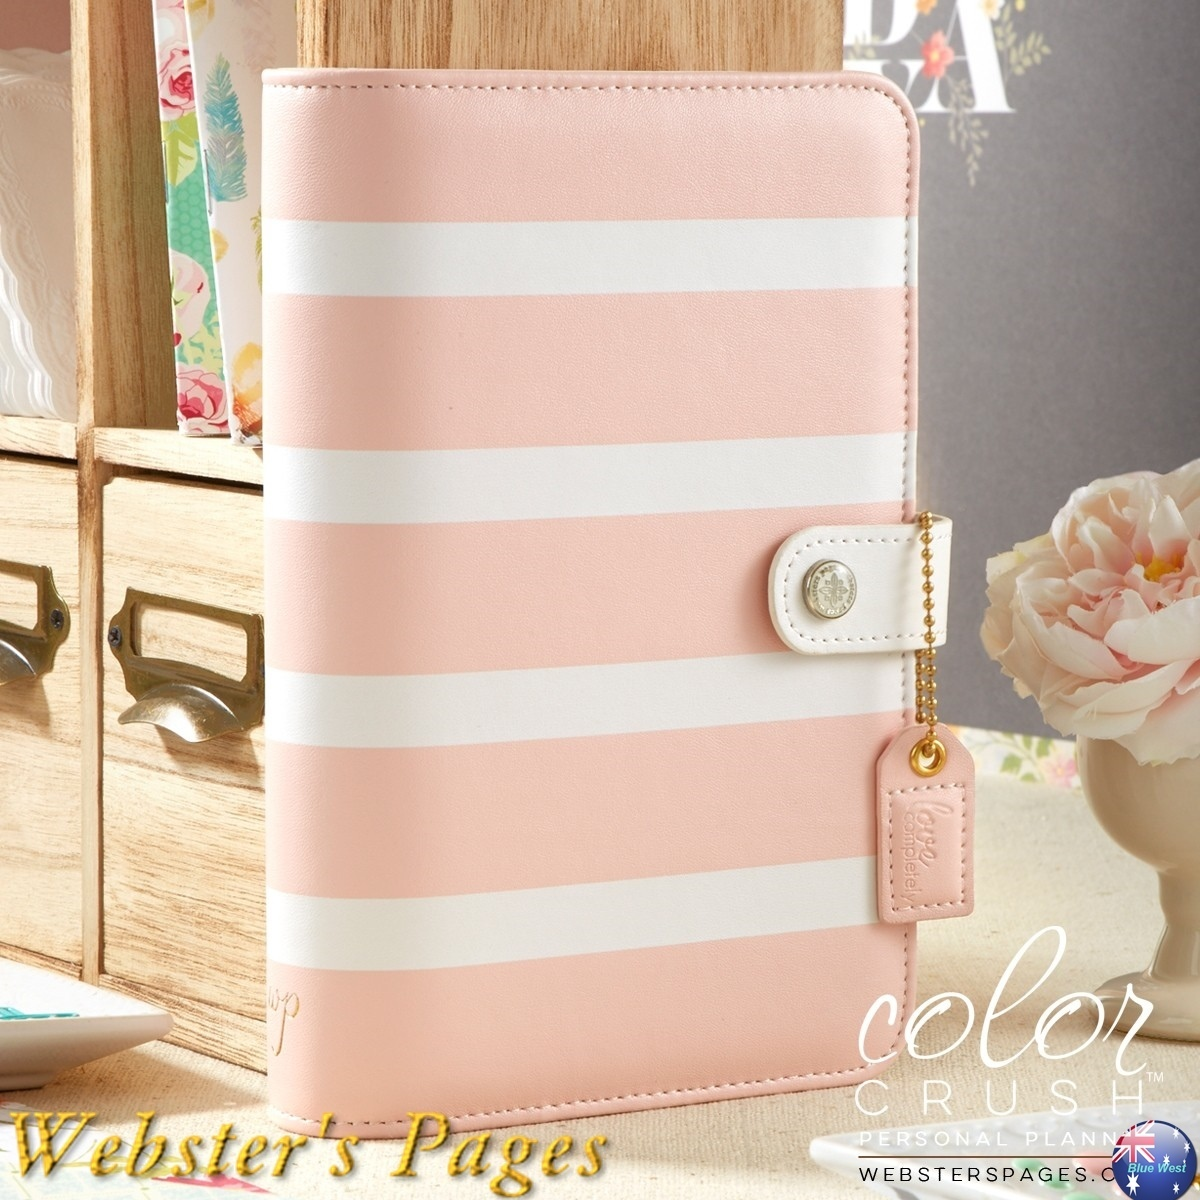 ◇Webster's Pages◇Color Crush Planner/ピンクストライプ/M